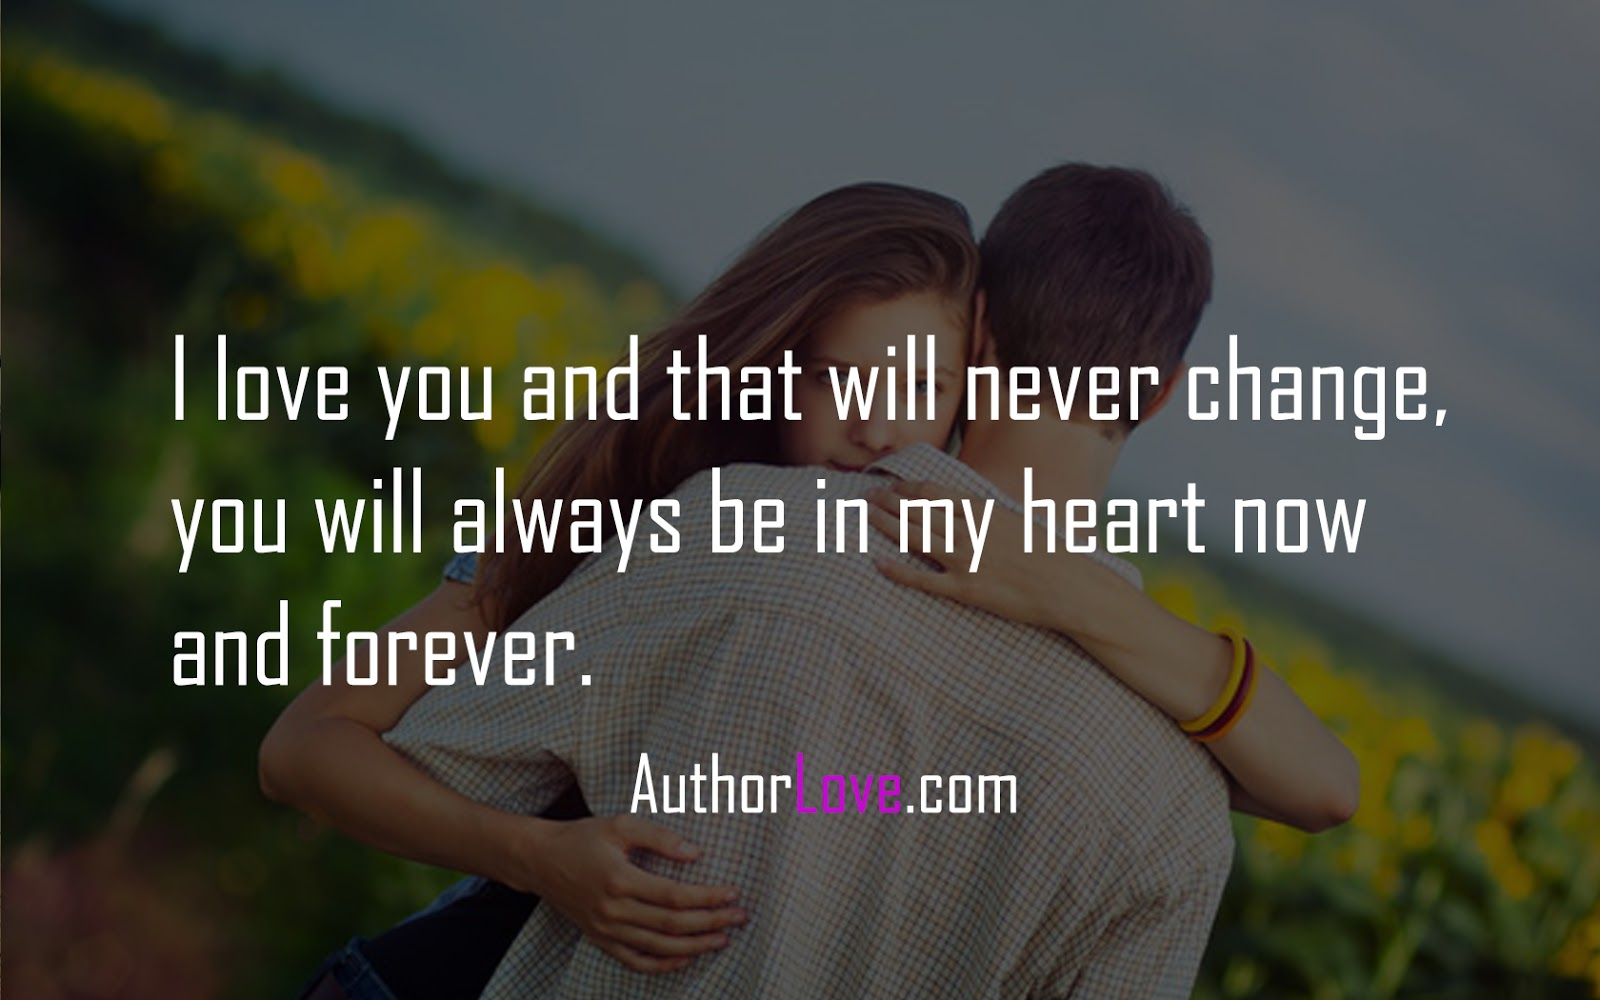 Love Quotes For Her I Love You And That Will Never Change  Love Quotes  Author Love